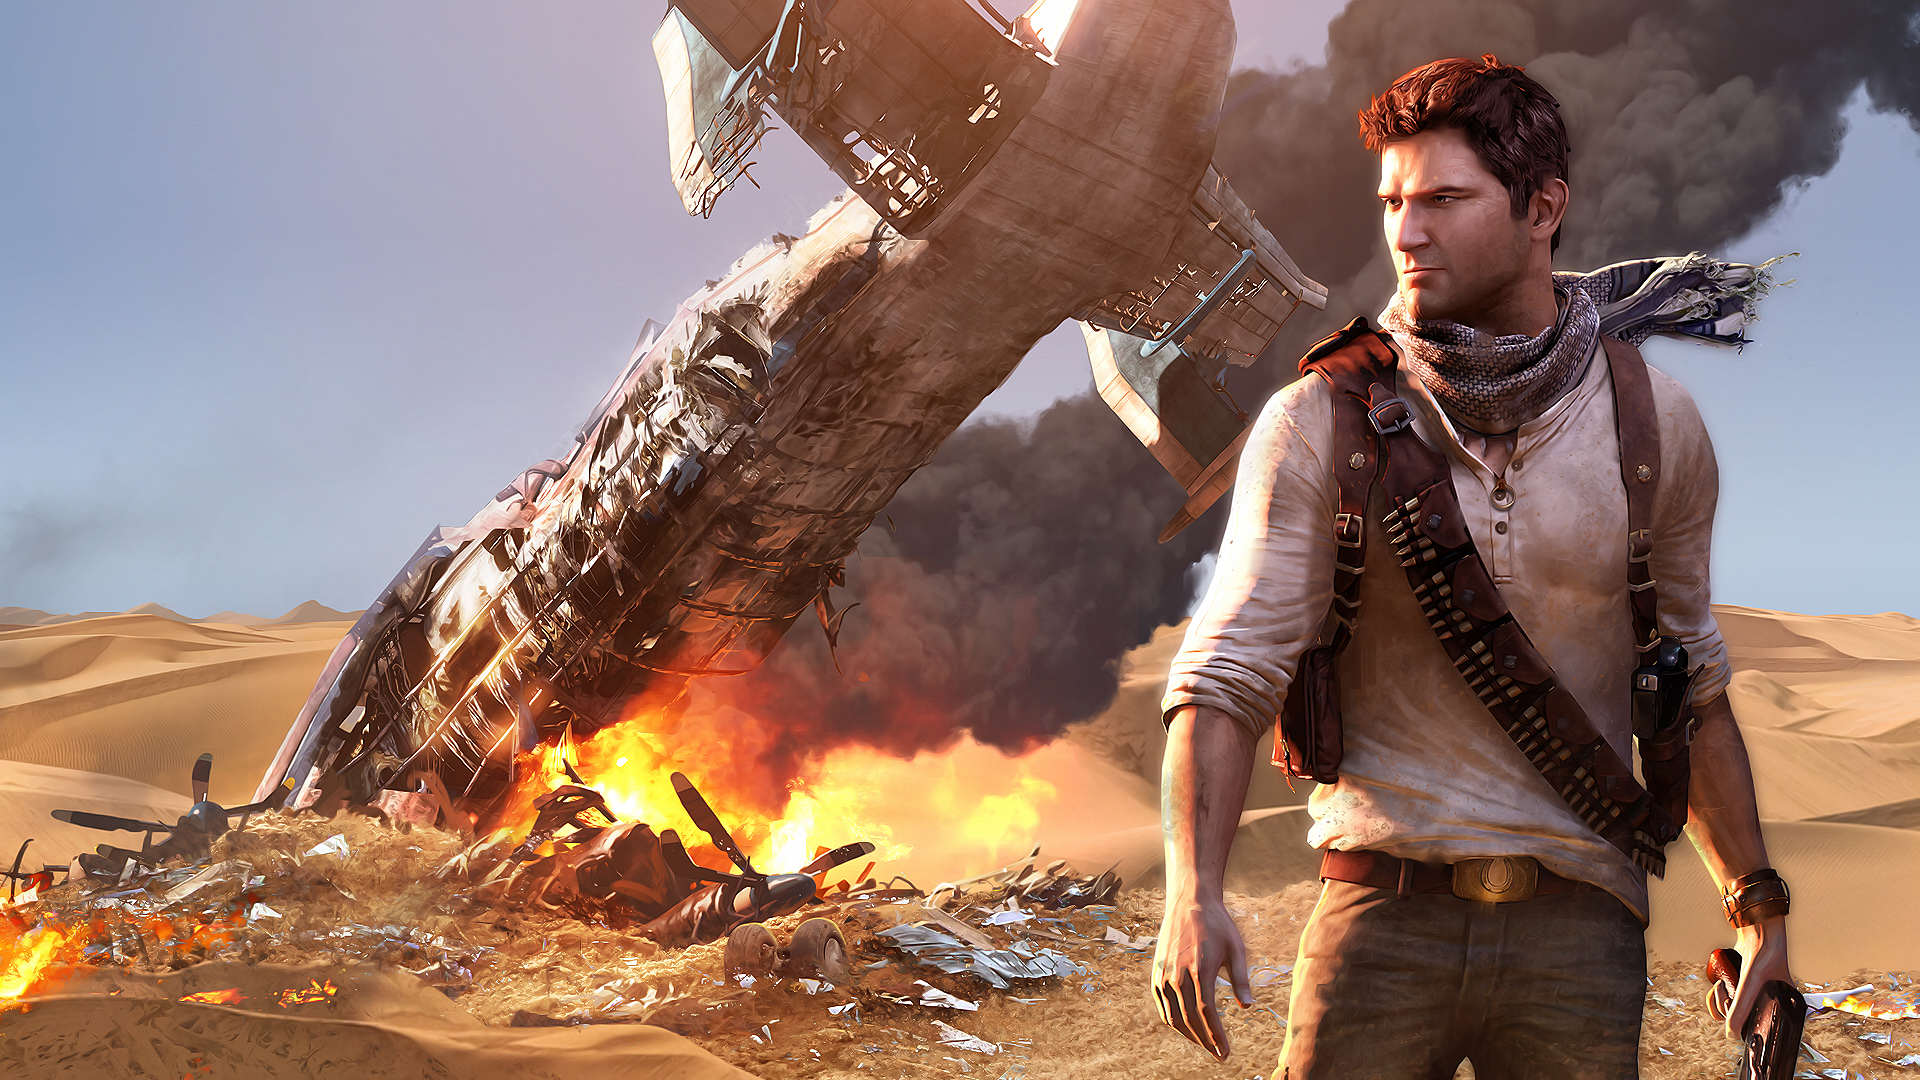 Who Should Play Drake In The Uncharted Movie? uncharted